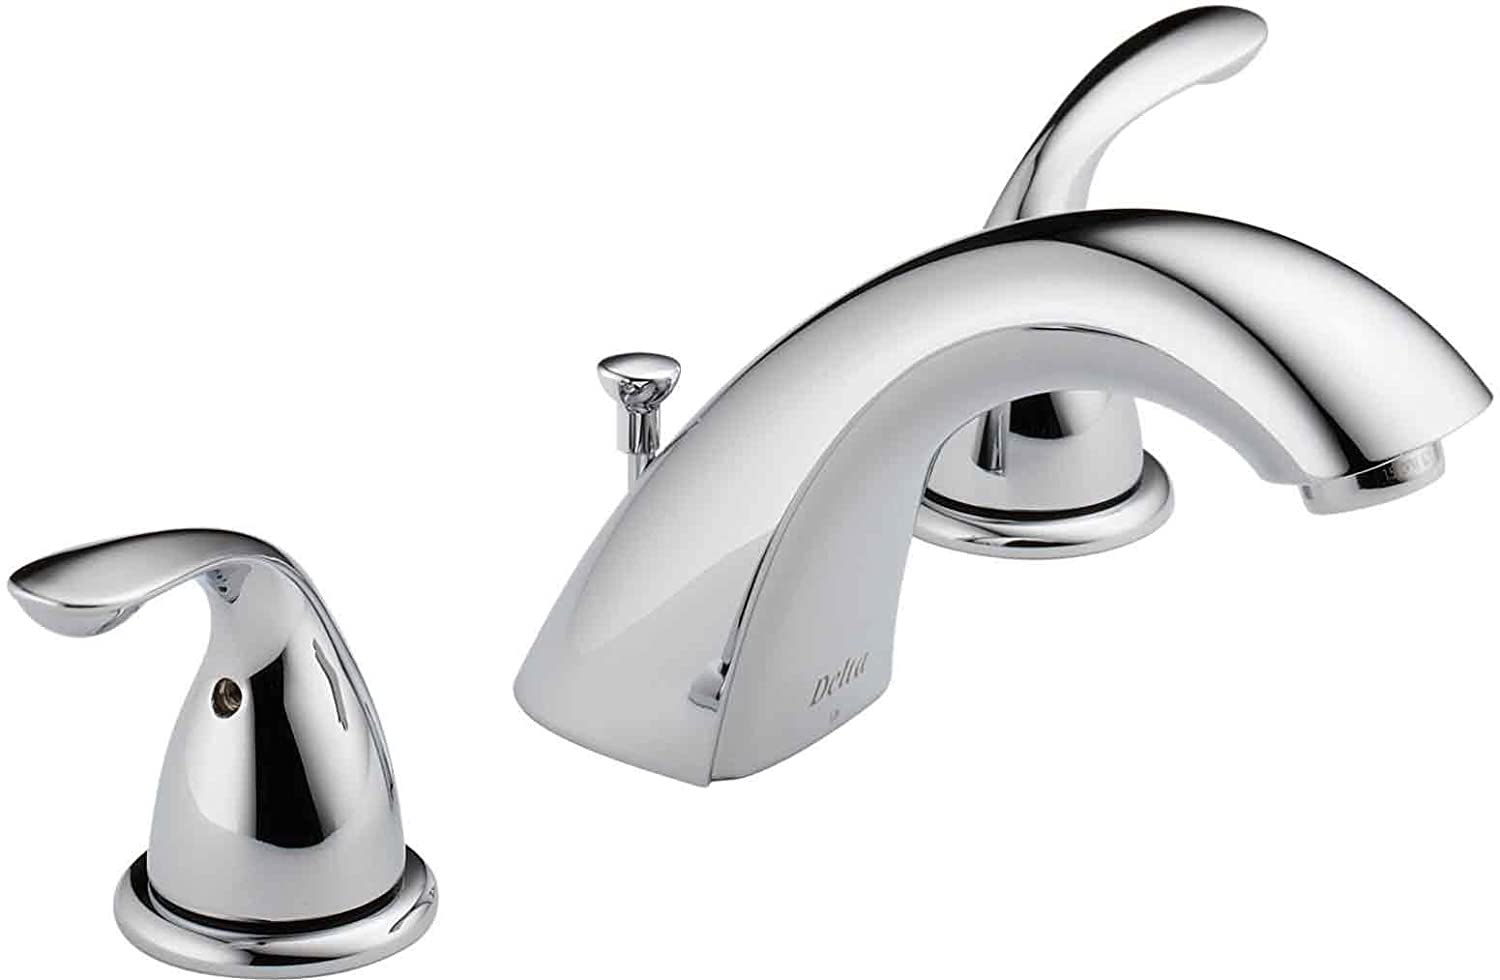 Superb Delta Faucet 3530LF MPU Classic Two Handle Widespread Bathroom Faucet,  Chrome   Touch On Bathroom Sink Faucets   Amazon.com